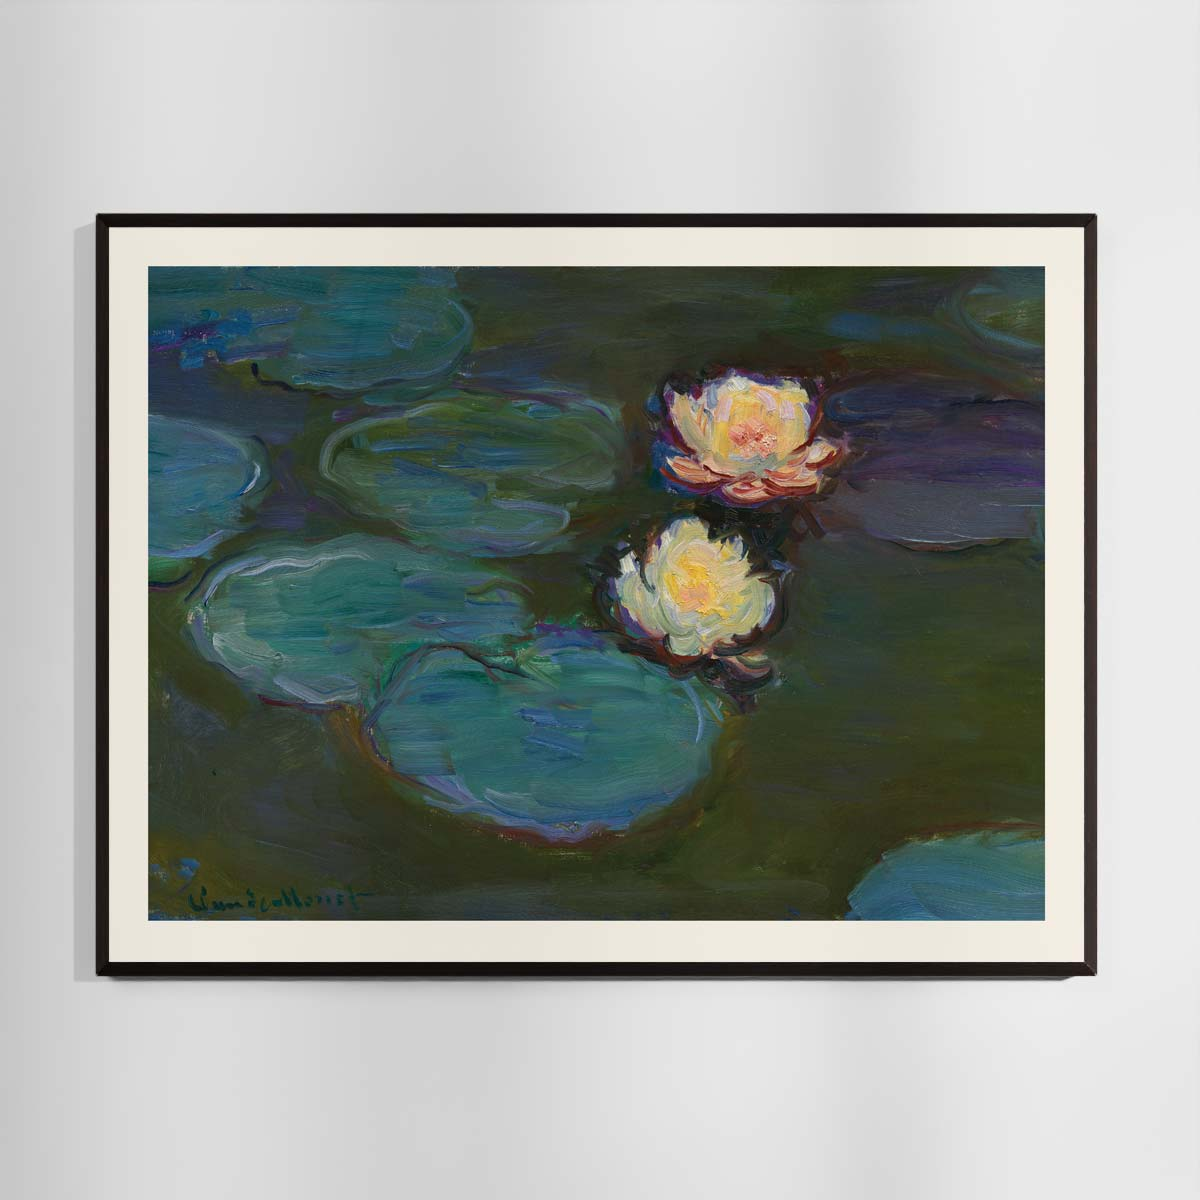 Åkander- Nympheas - Claude Monet plakat